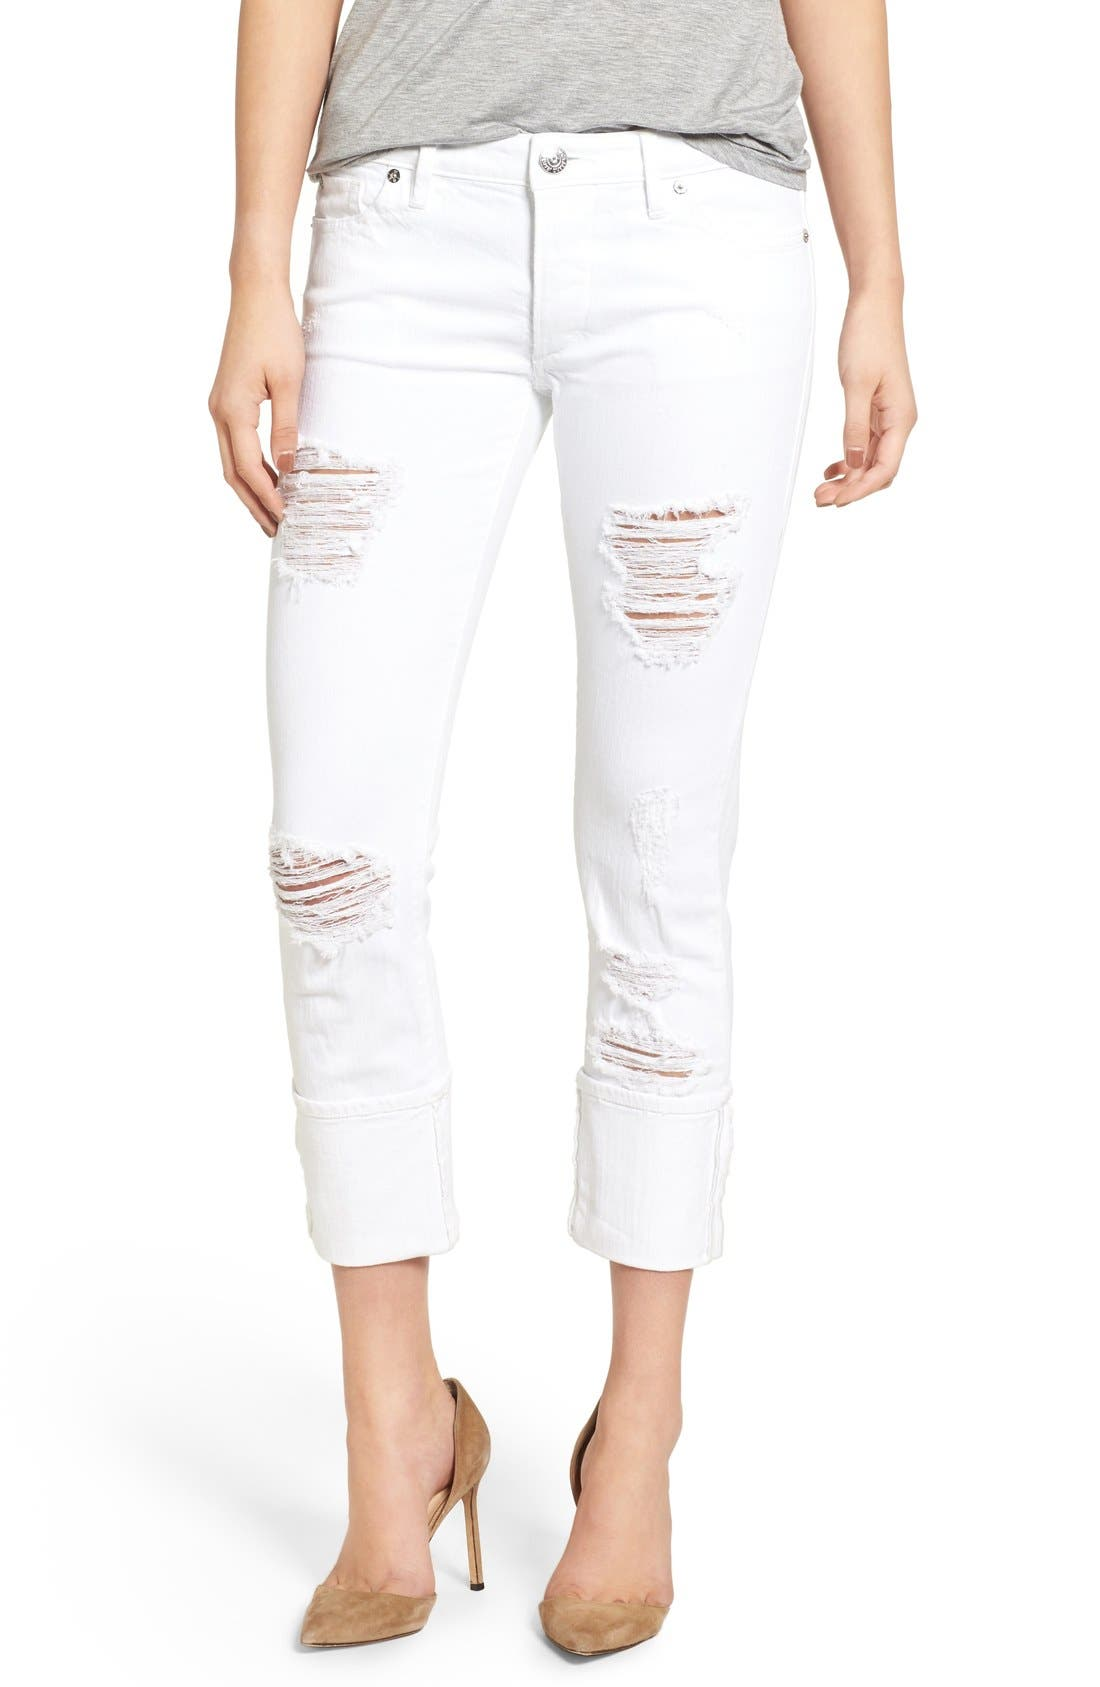 Liv Relaxed Skinny Jeans,                             Main thumbnail 1, color,                             Bright White Destroyed